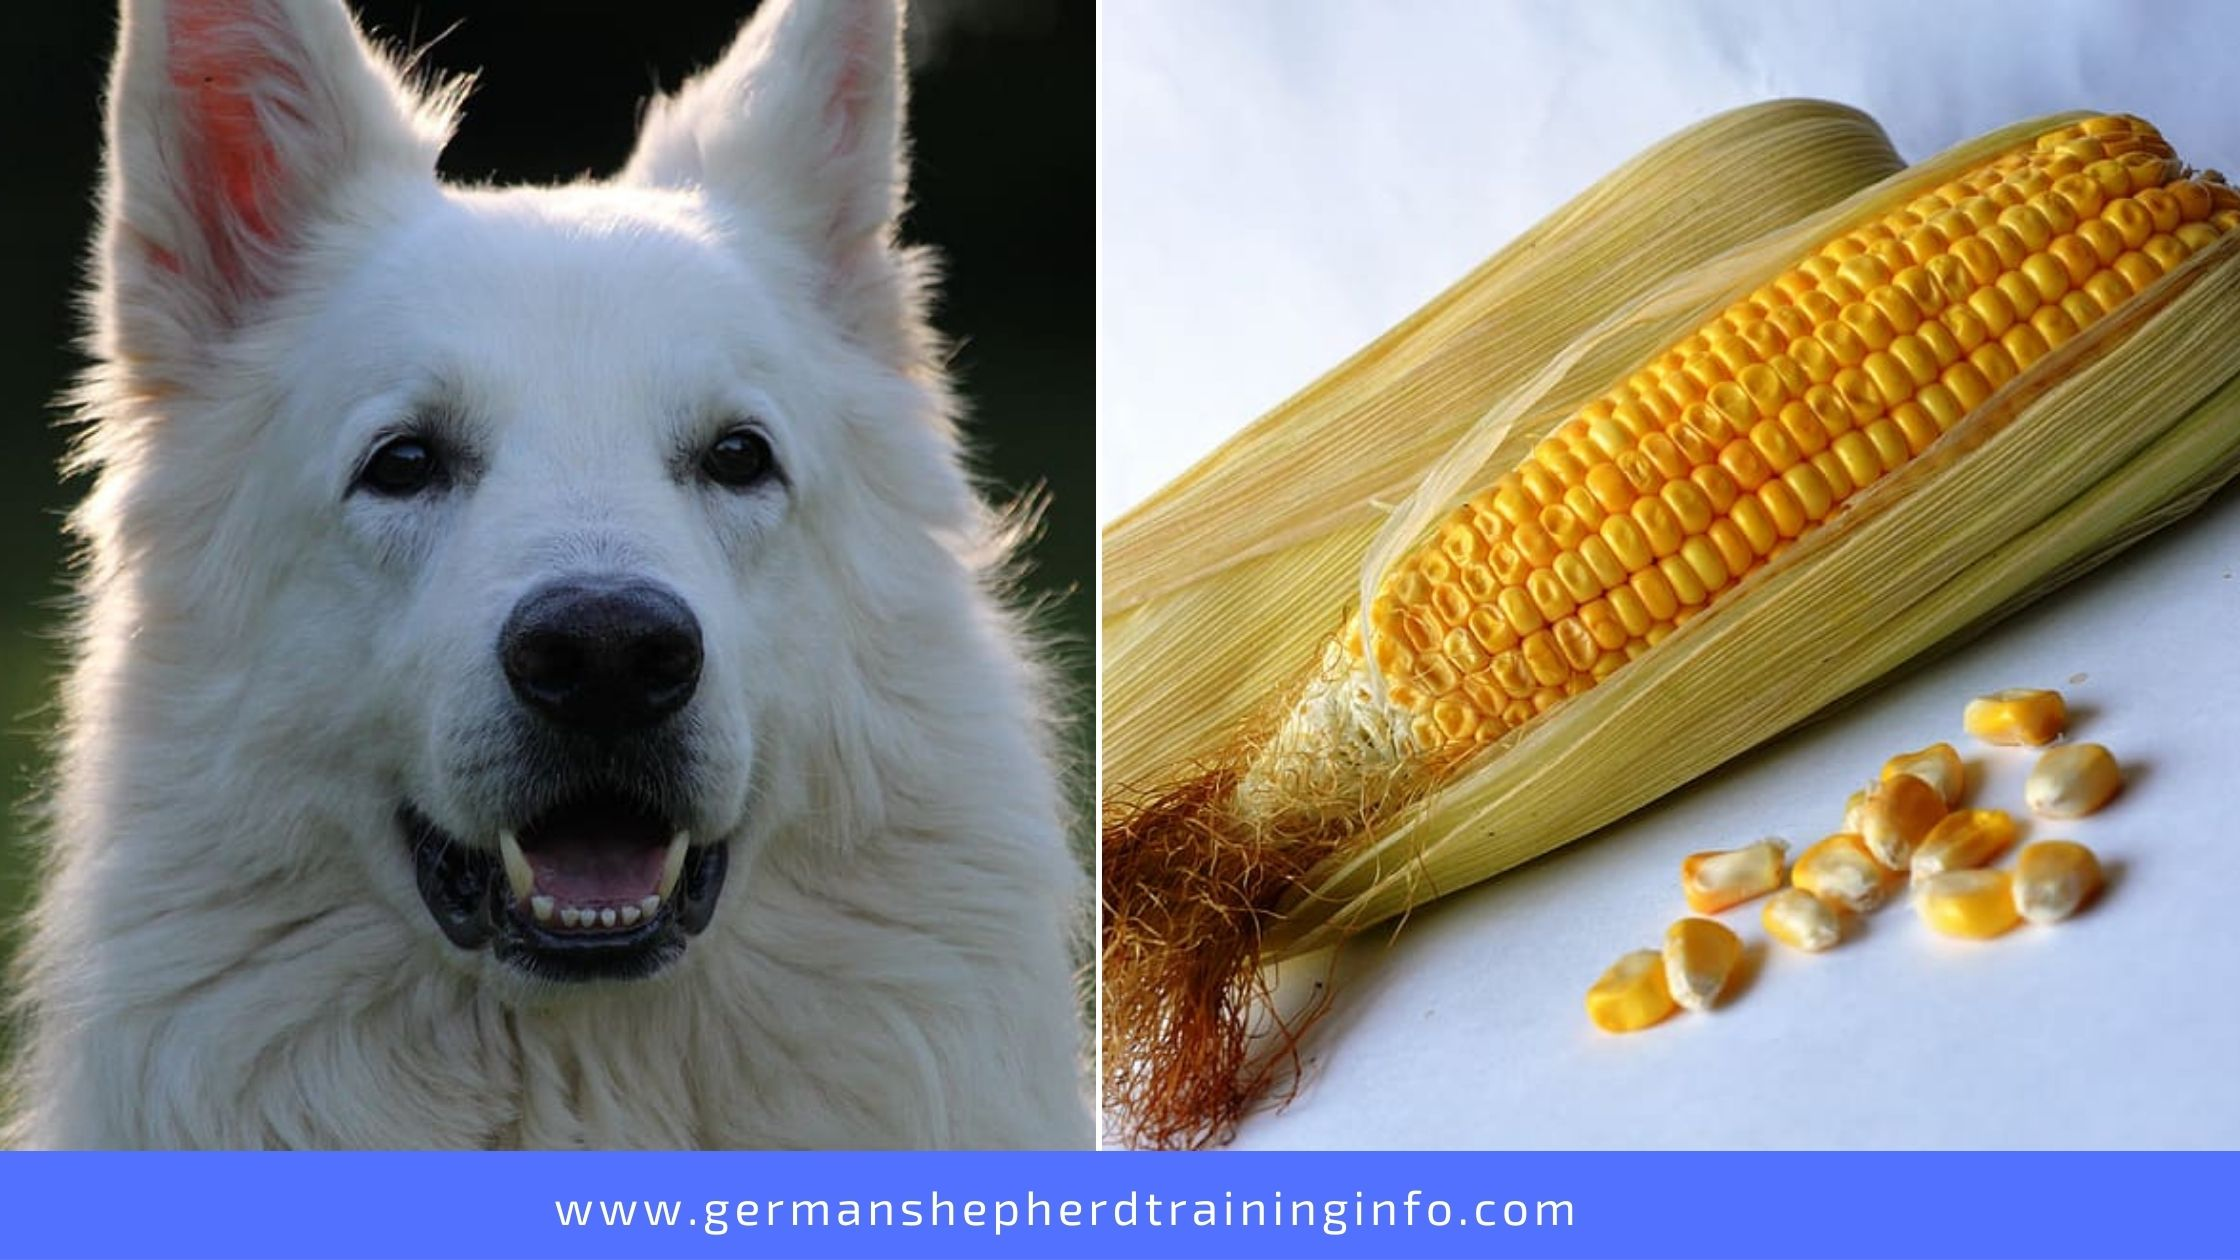 Can Dogs Eat Corn Husks?